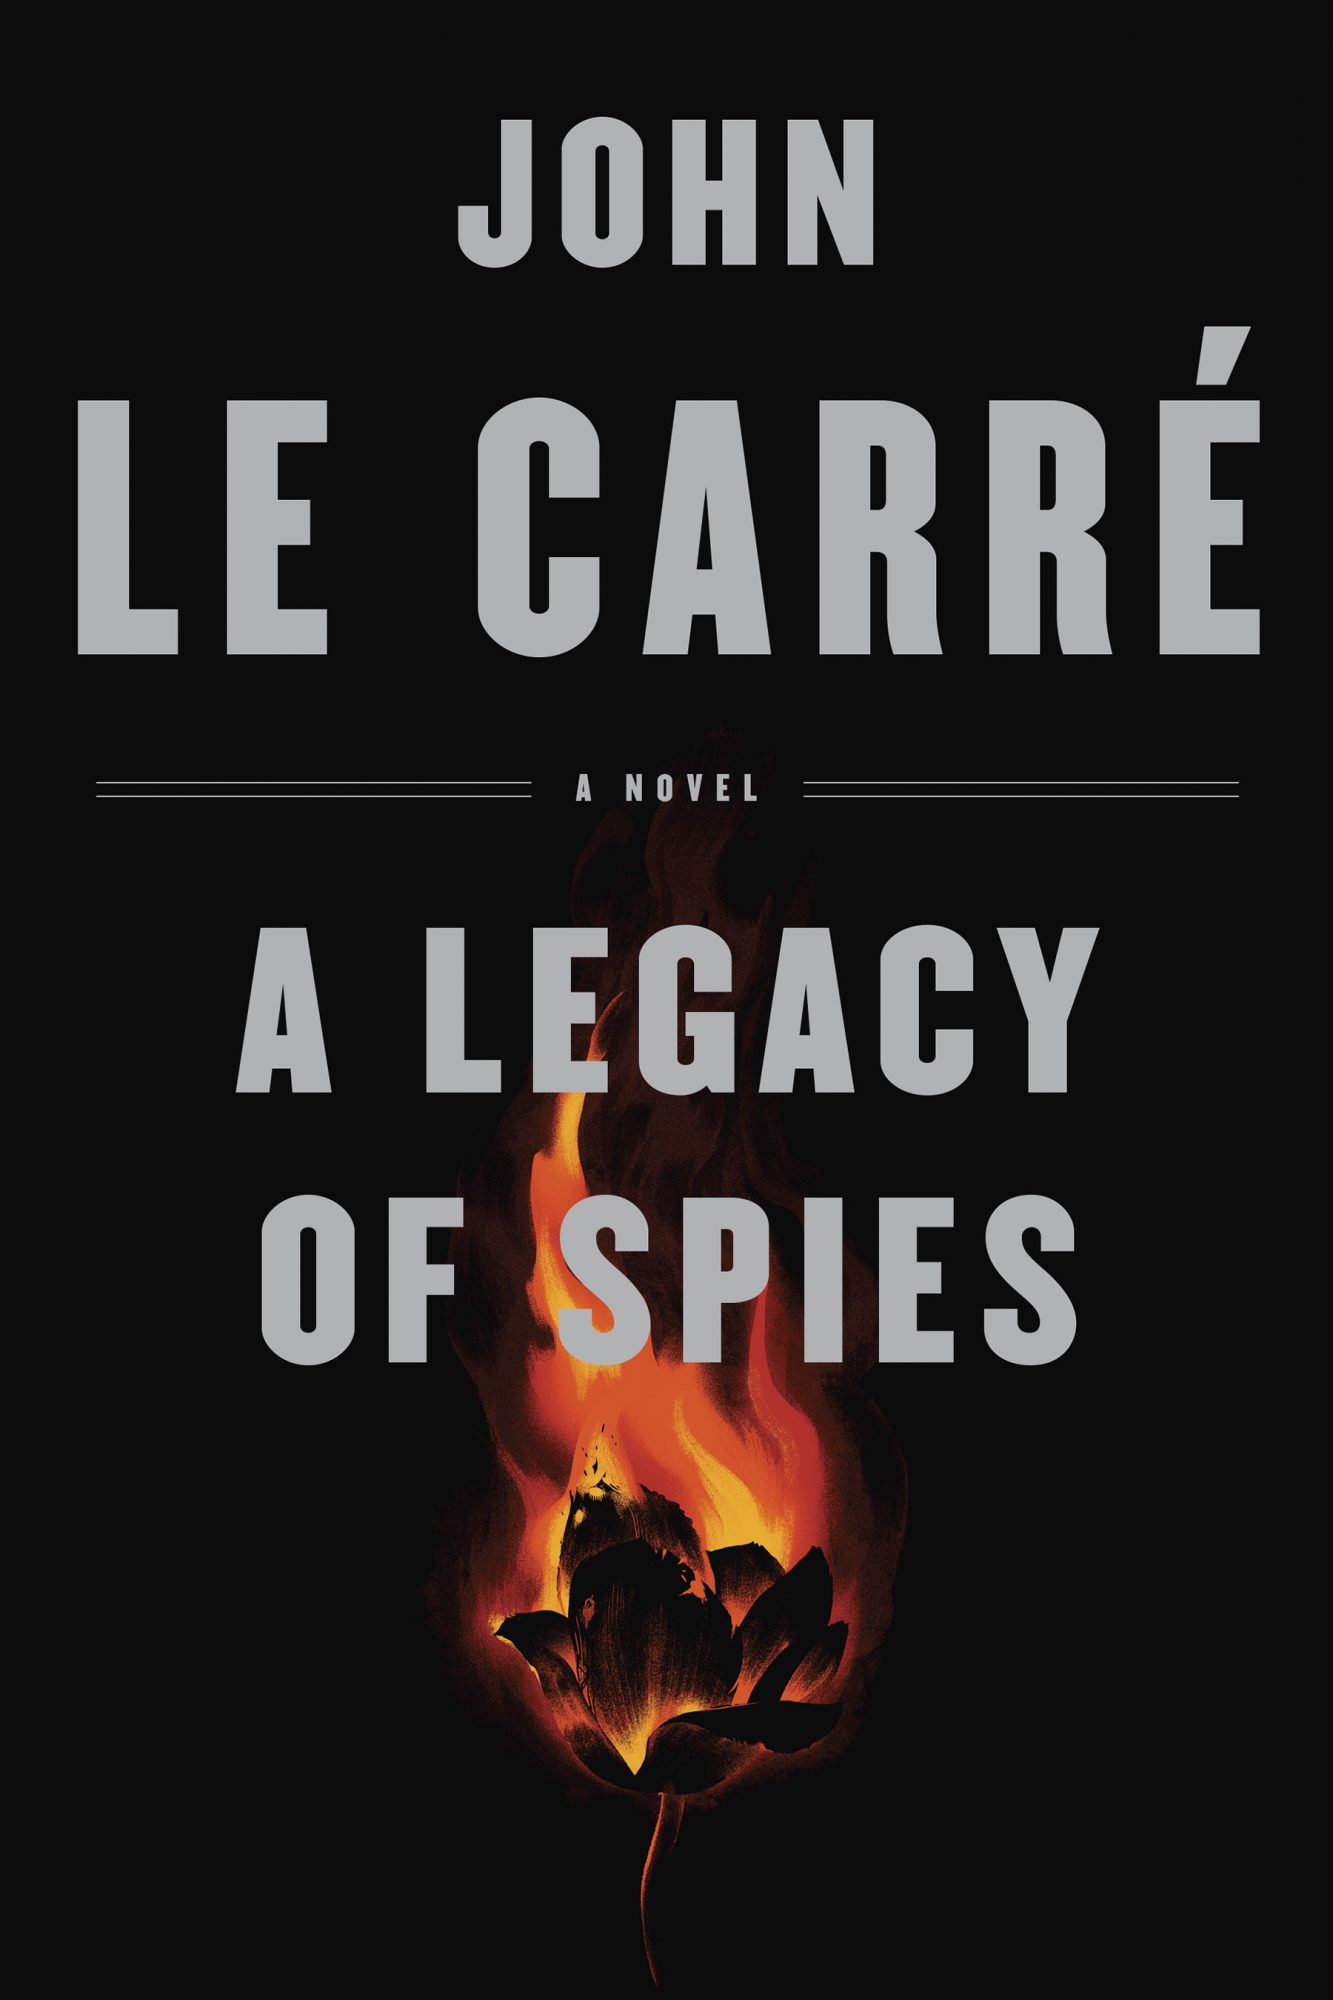 A Legacy of Spiesby John le Carré